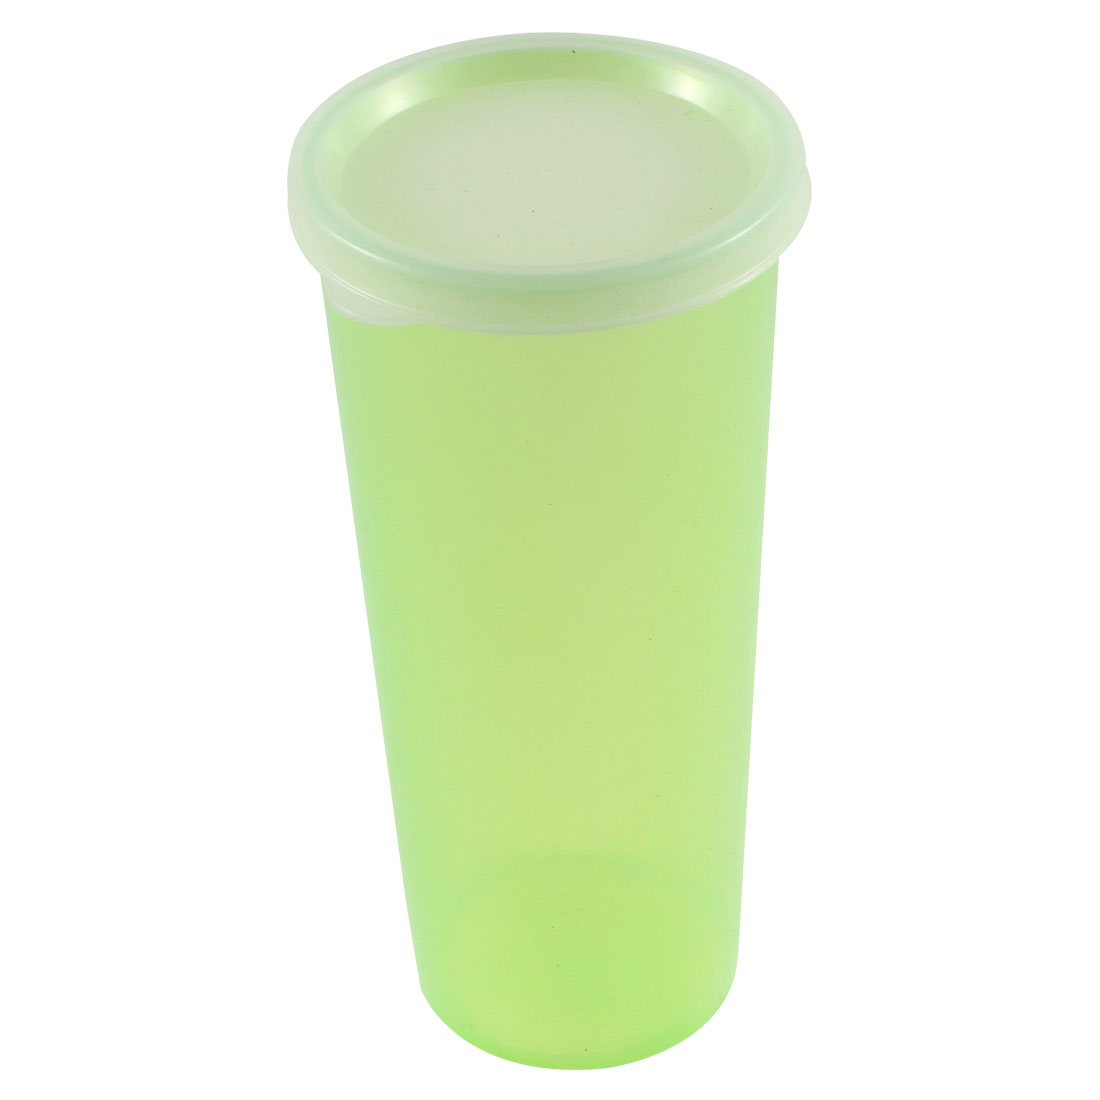 Plastic 500mL Capacity Portable Casual Sport Fruit Juice Water Cup Bottle Green